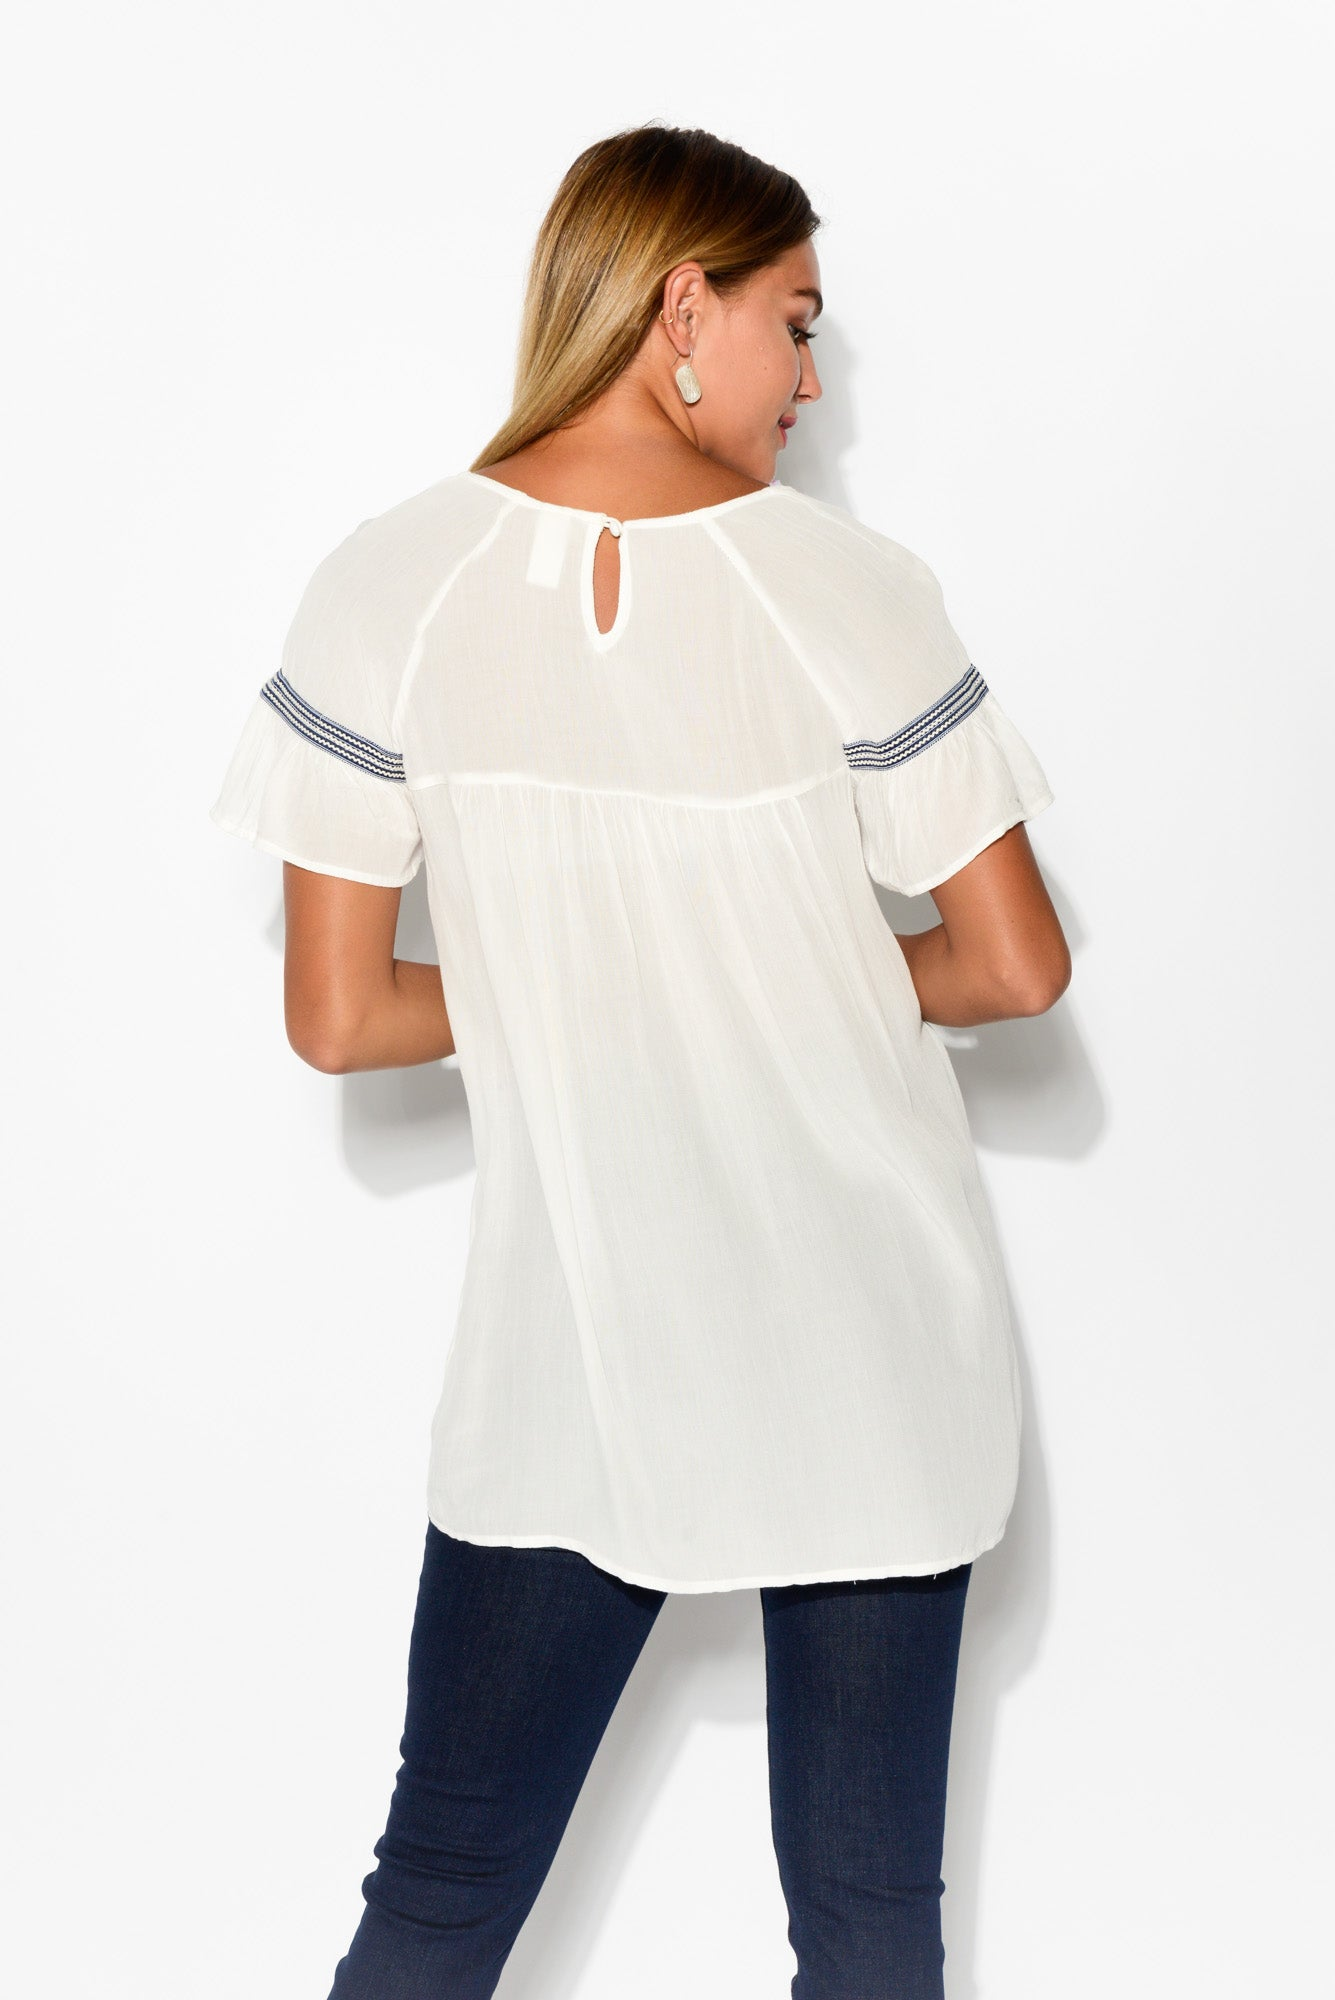 Bliss White Embroidered Top - Blue Bungalow